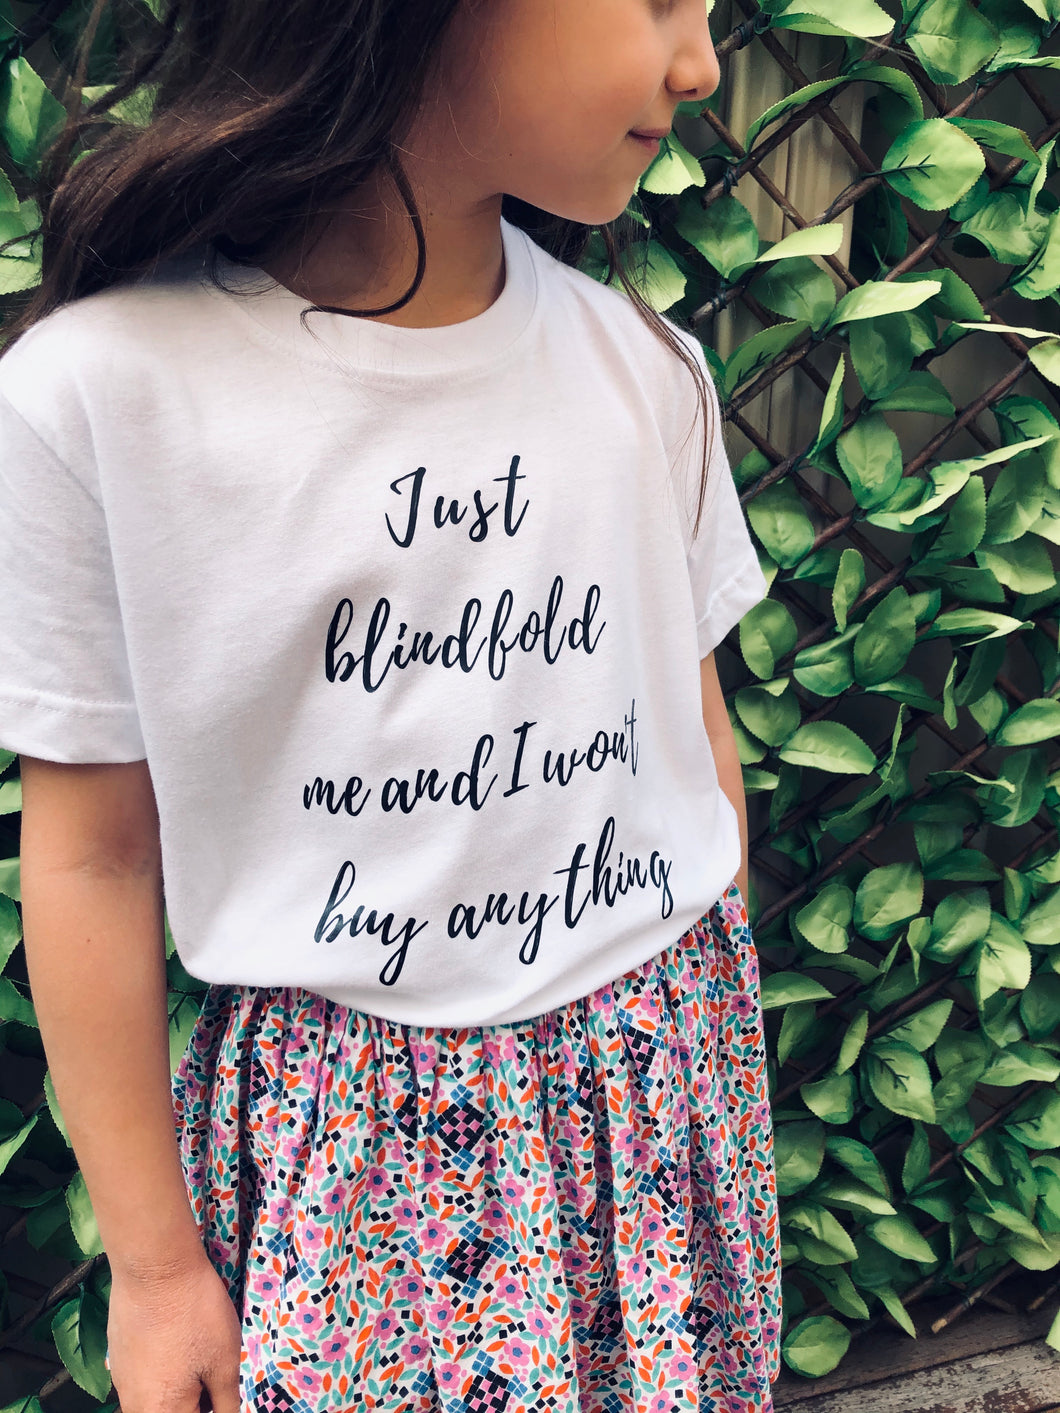 Just blindfold me ..T-shirt - Womens and Kids